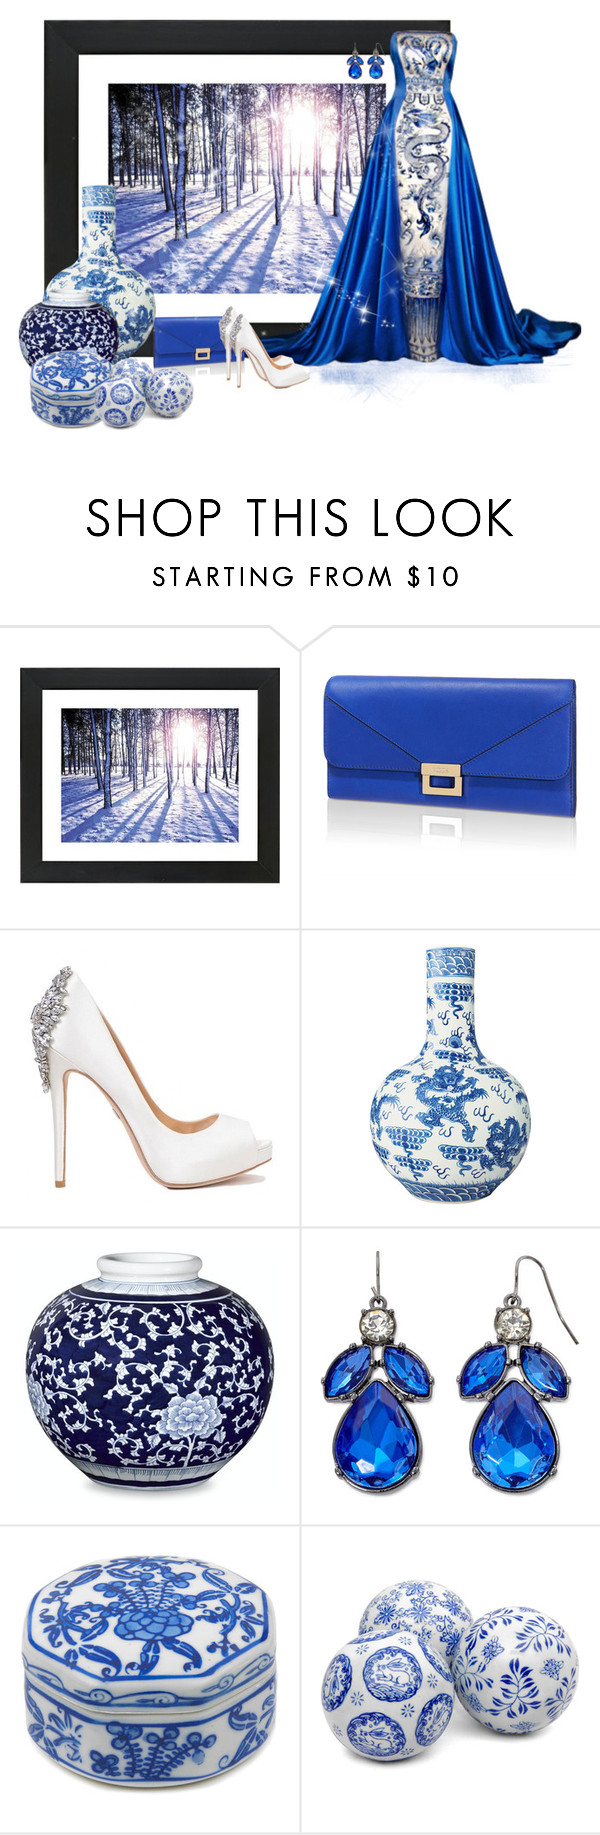 """""""Ice Princess"""" by wendywantsmoreclothes ❤ liked on Polyvore featuring Universal Lighting and Decor, Tod's, Badgley Mischka, OKA, Williams-Sonoma, Mixit, gown and RoyalBlue"""